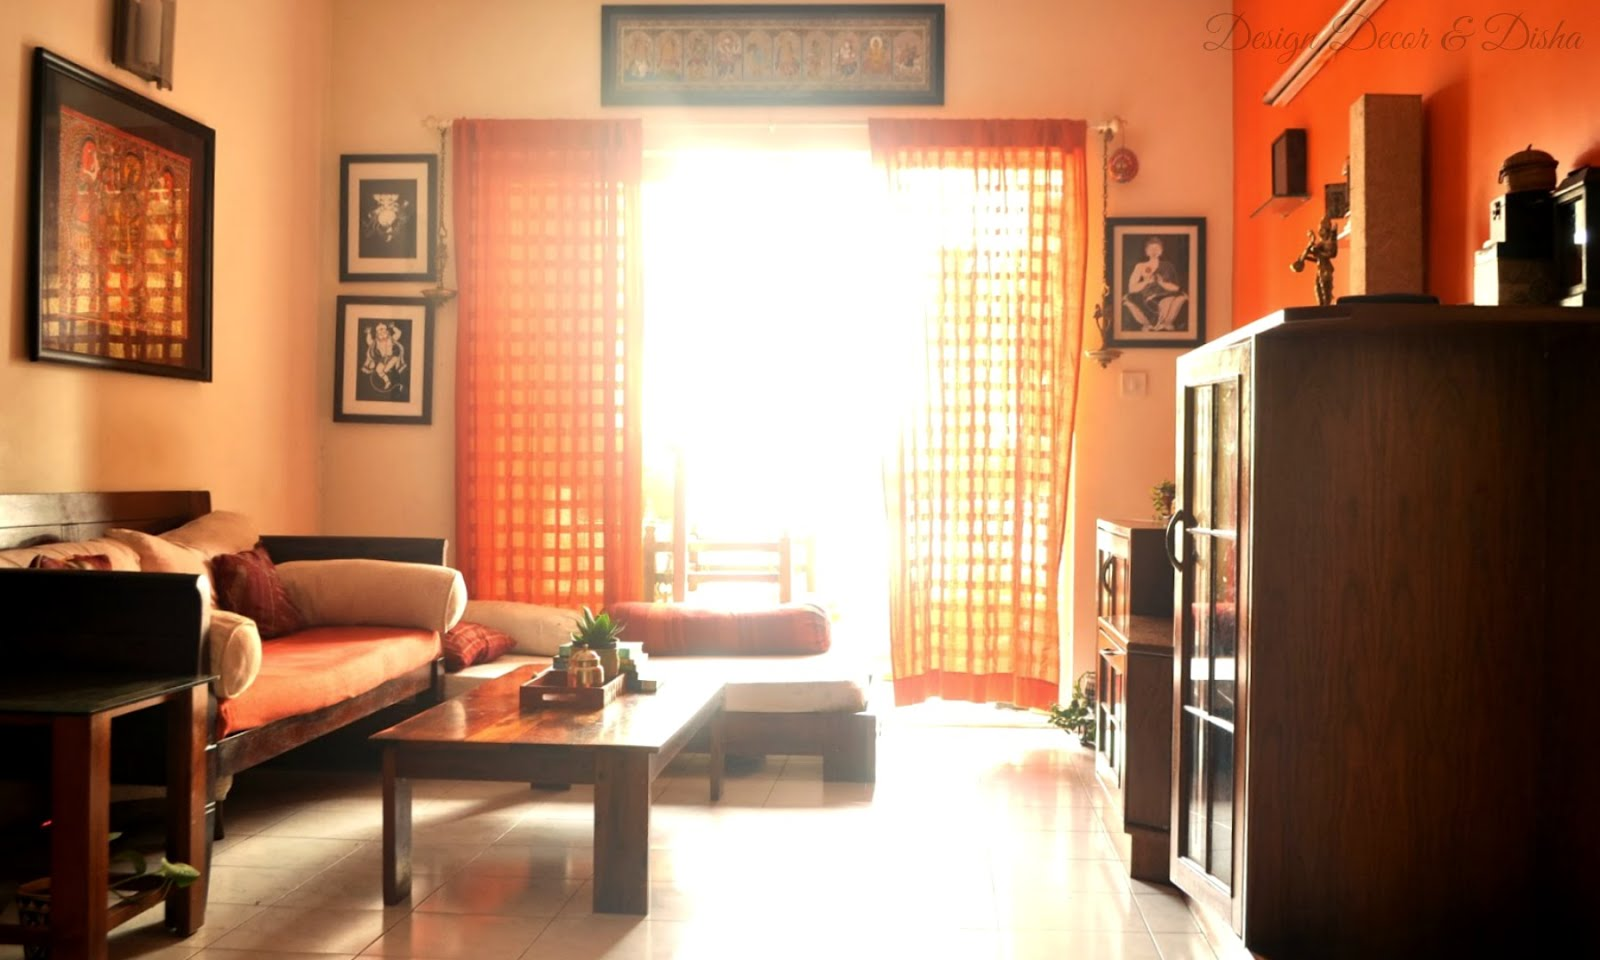 Design Decor & Disha | An Indian Design & Decor Blog: Home ...